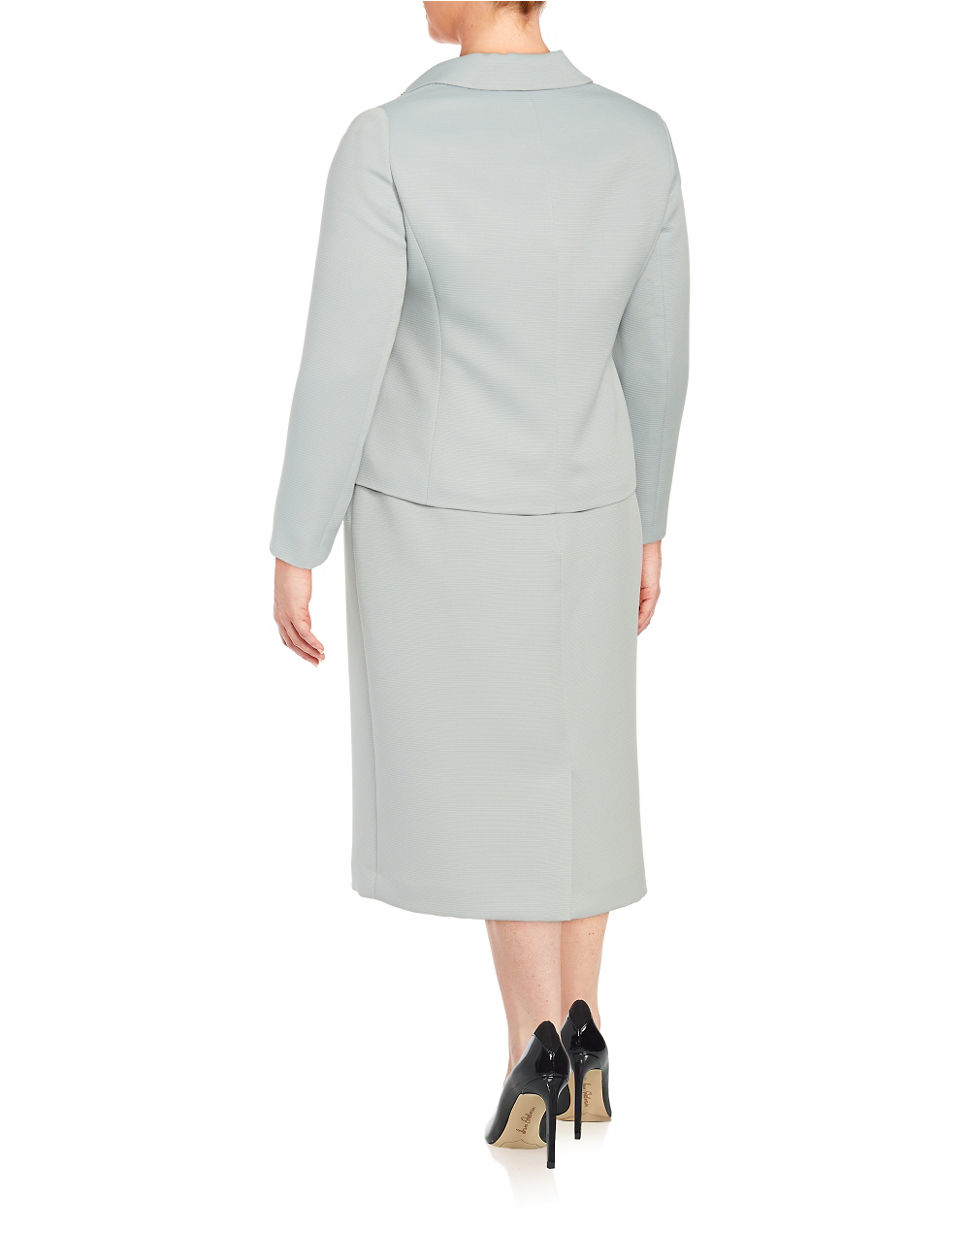 Tahari Plus Embellished Two Piece Skirt Suit Set In Gray